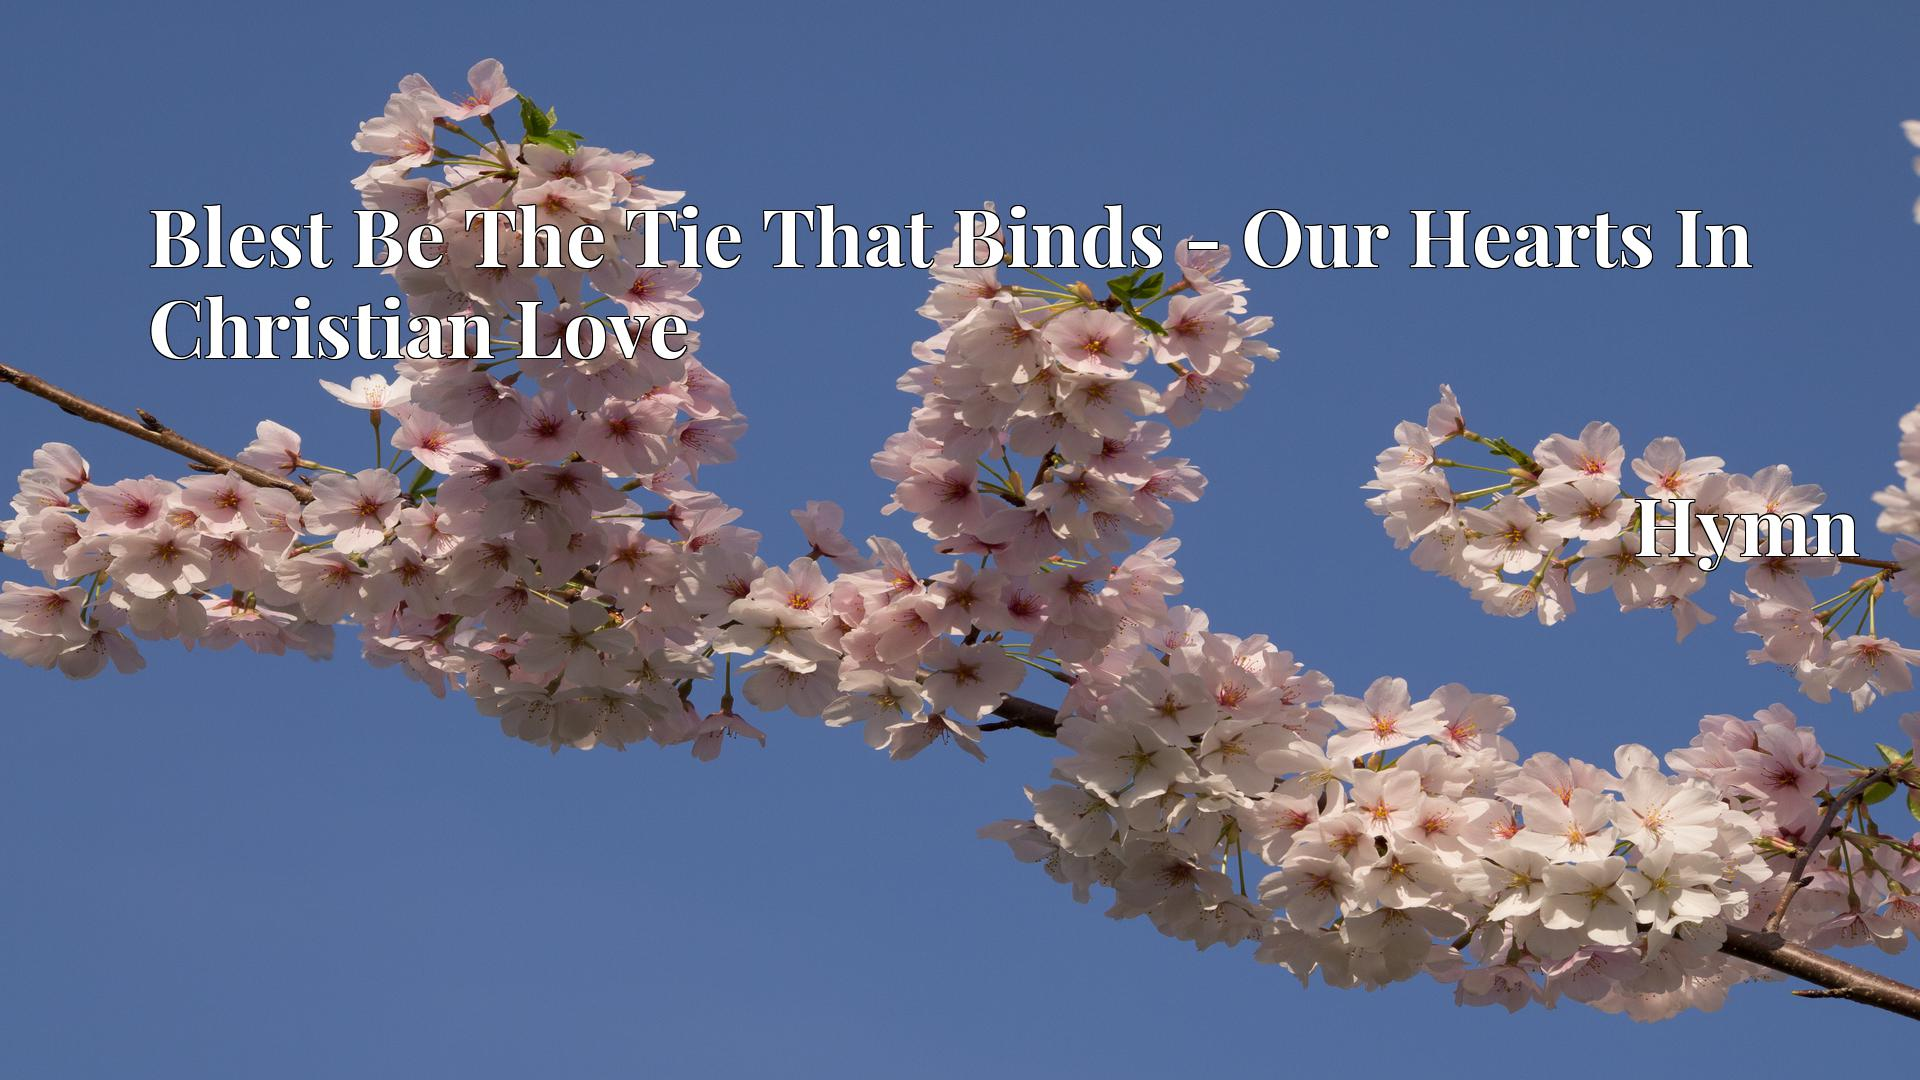 Blest Be The Tie That Binds - Our Hearts In Christian Love Hymn